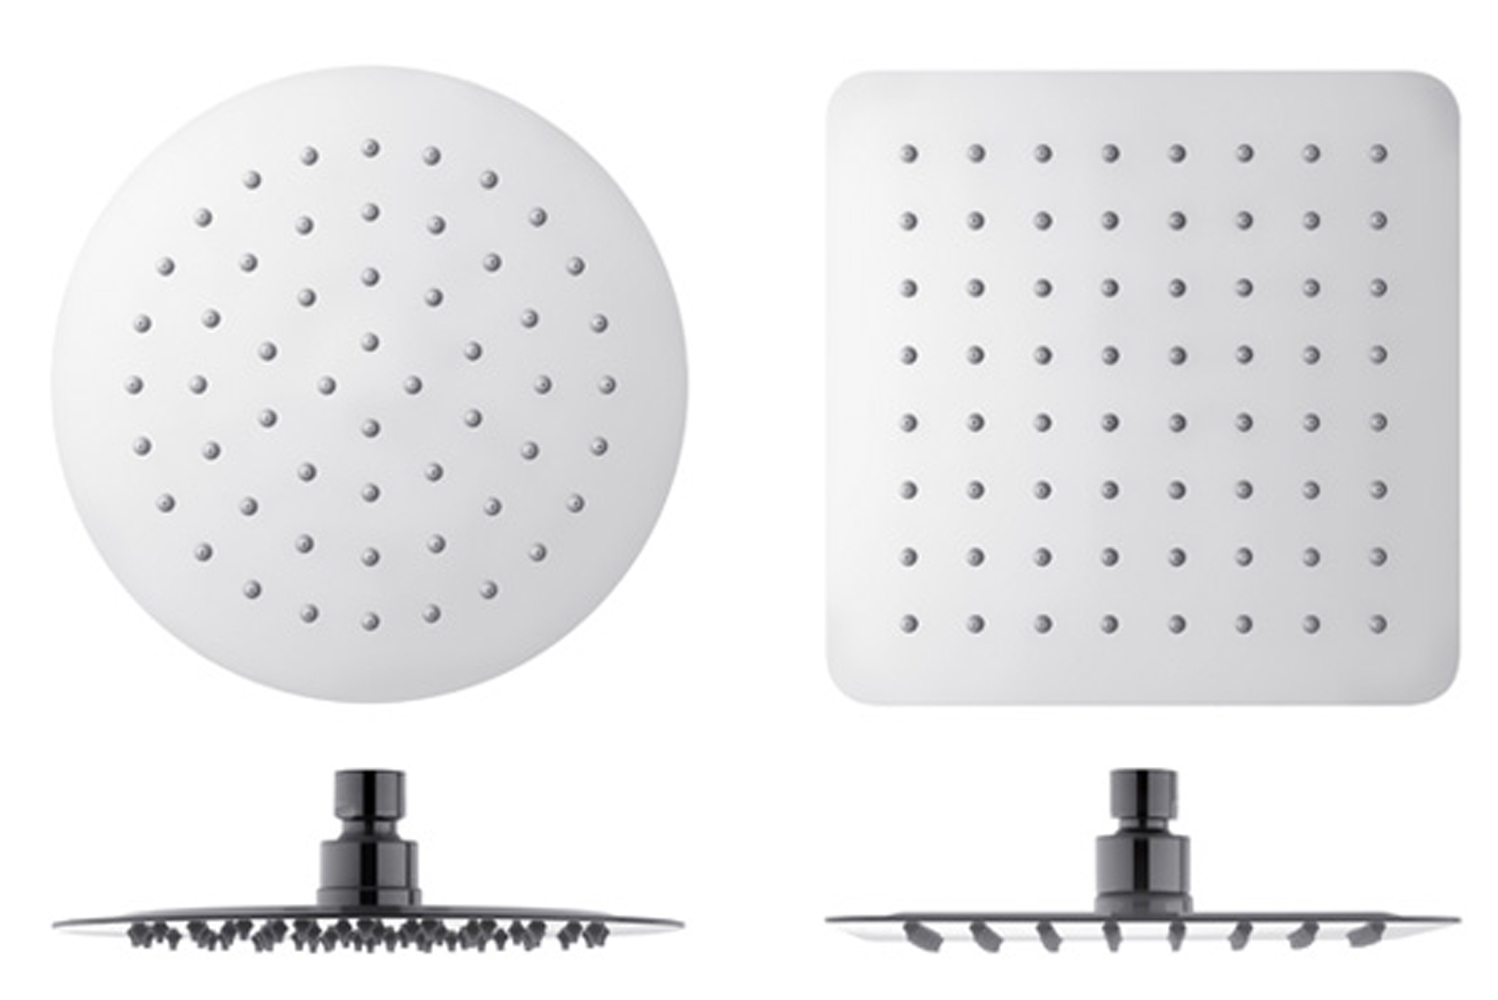 The shower heads have mirror-like finishes.